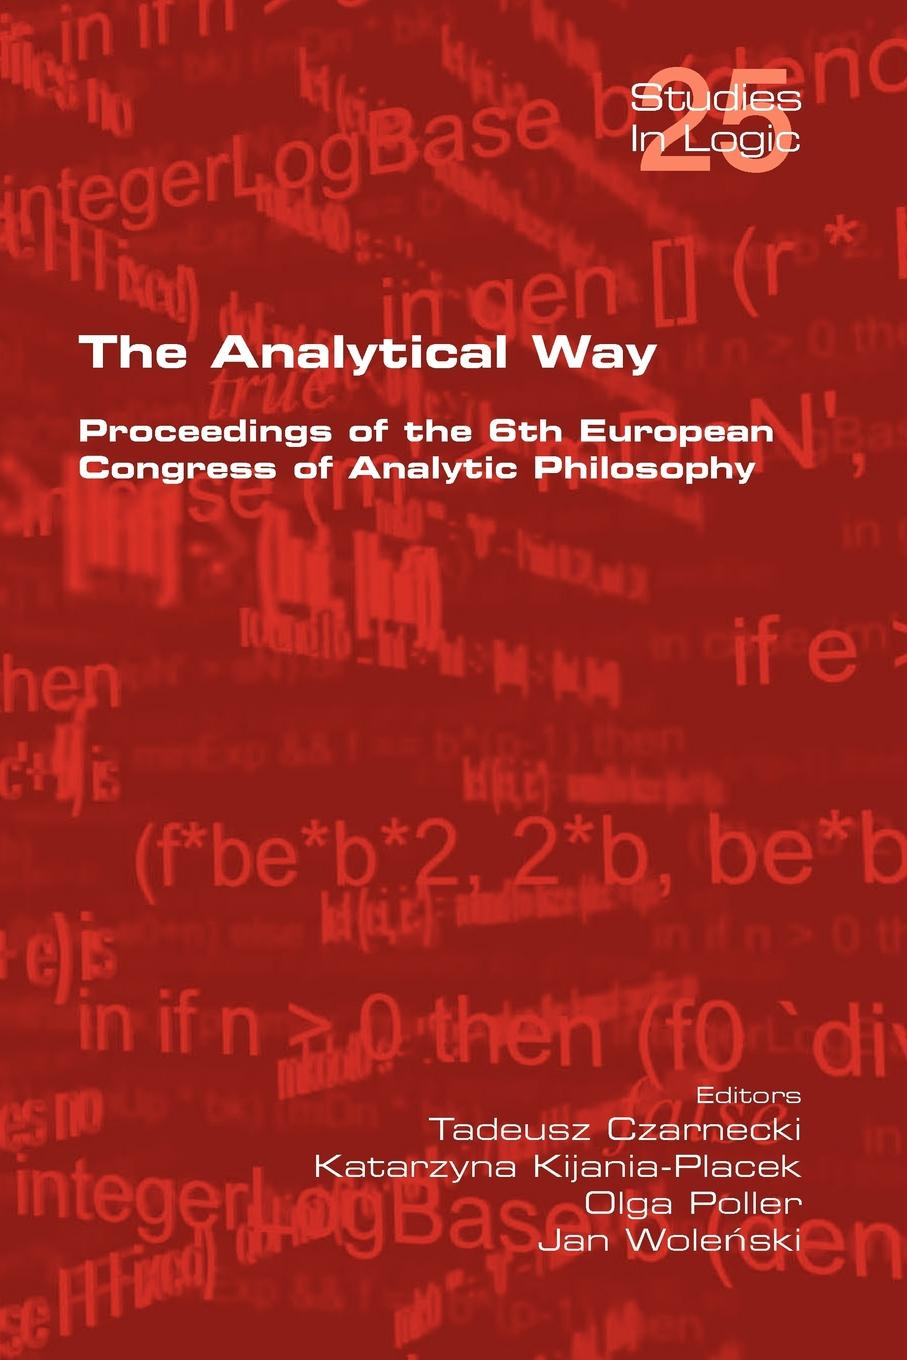 The Analytical Way. Proceedings of the 6th European Congress of Analytic Philosophy stephen hetherington metaphysics and epistemology a guided anthology